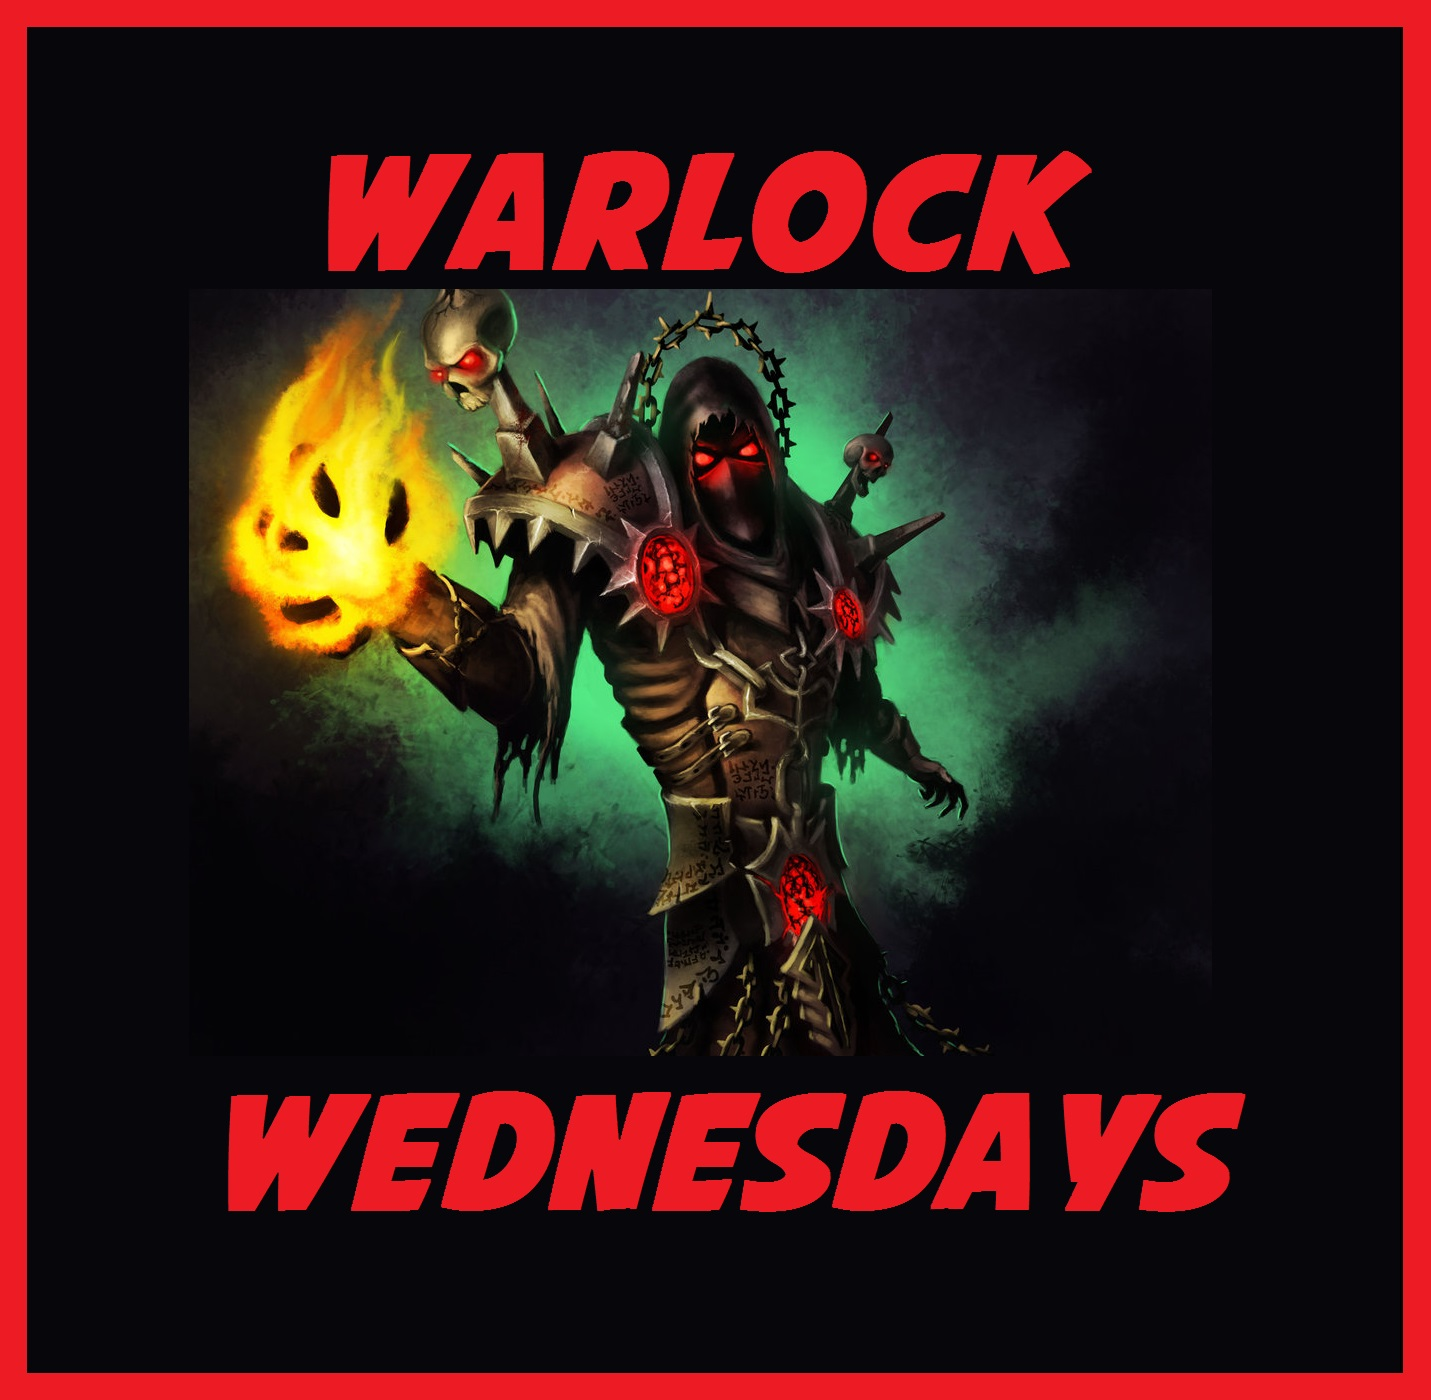 Warlock Wednesdays – The Ehnother Podcast Network